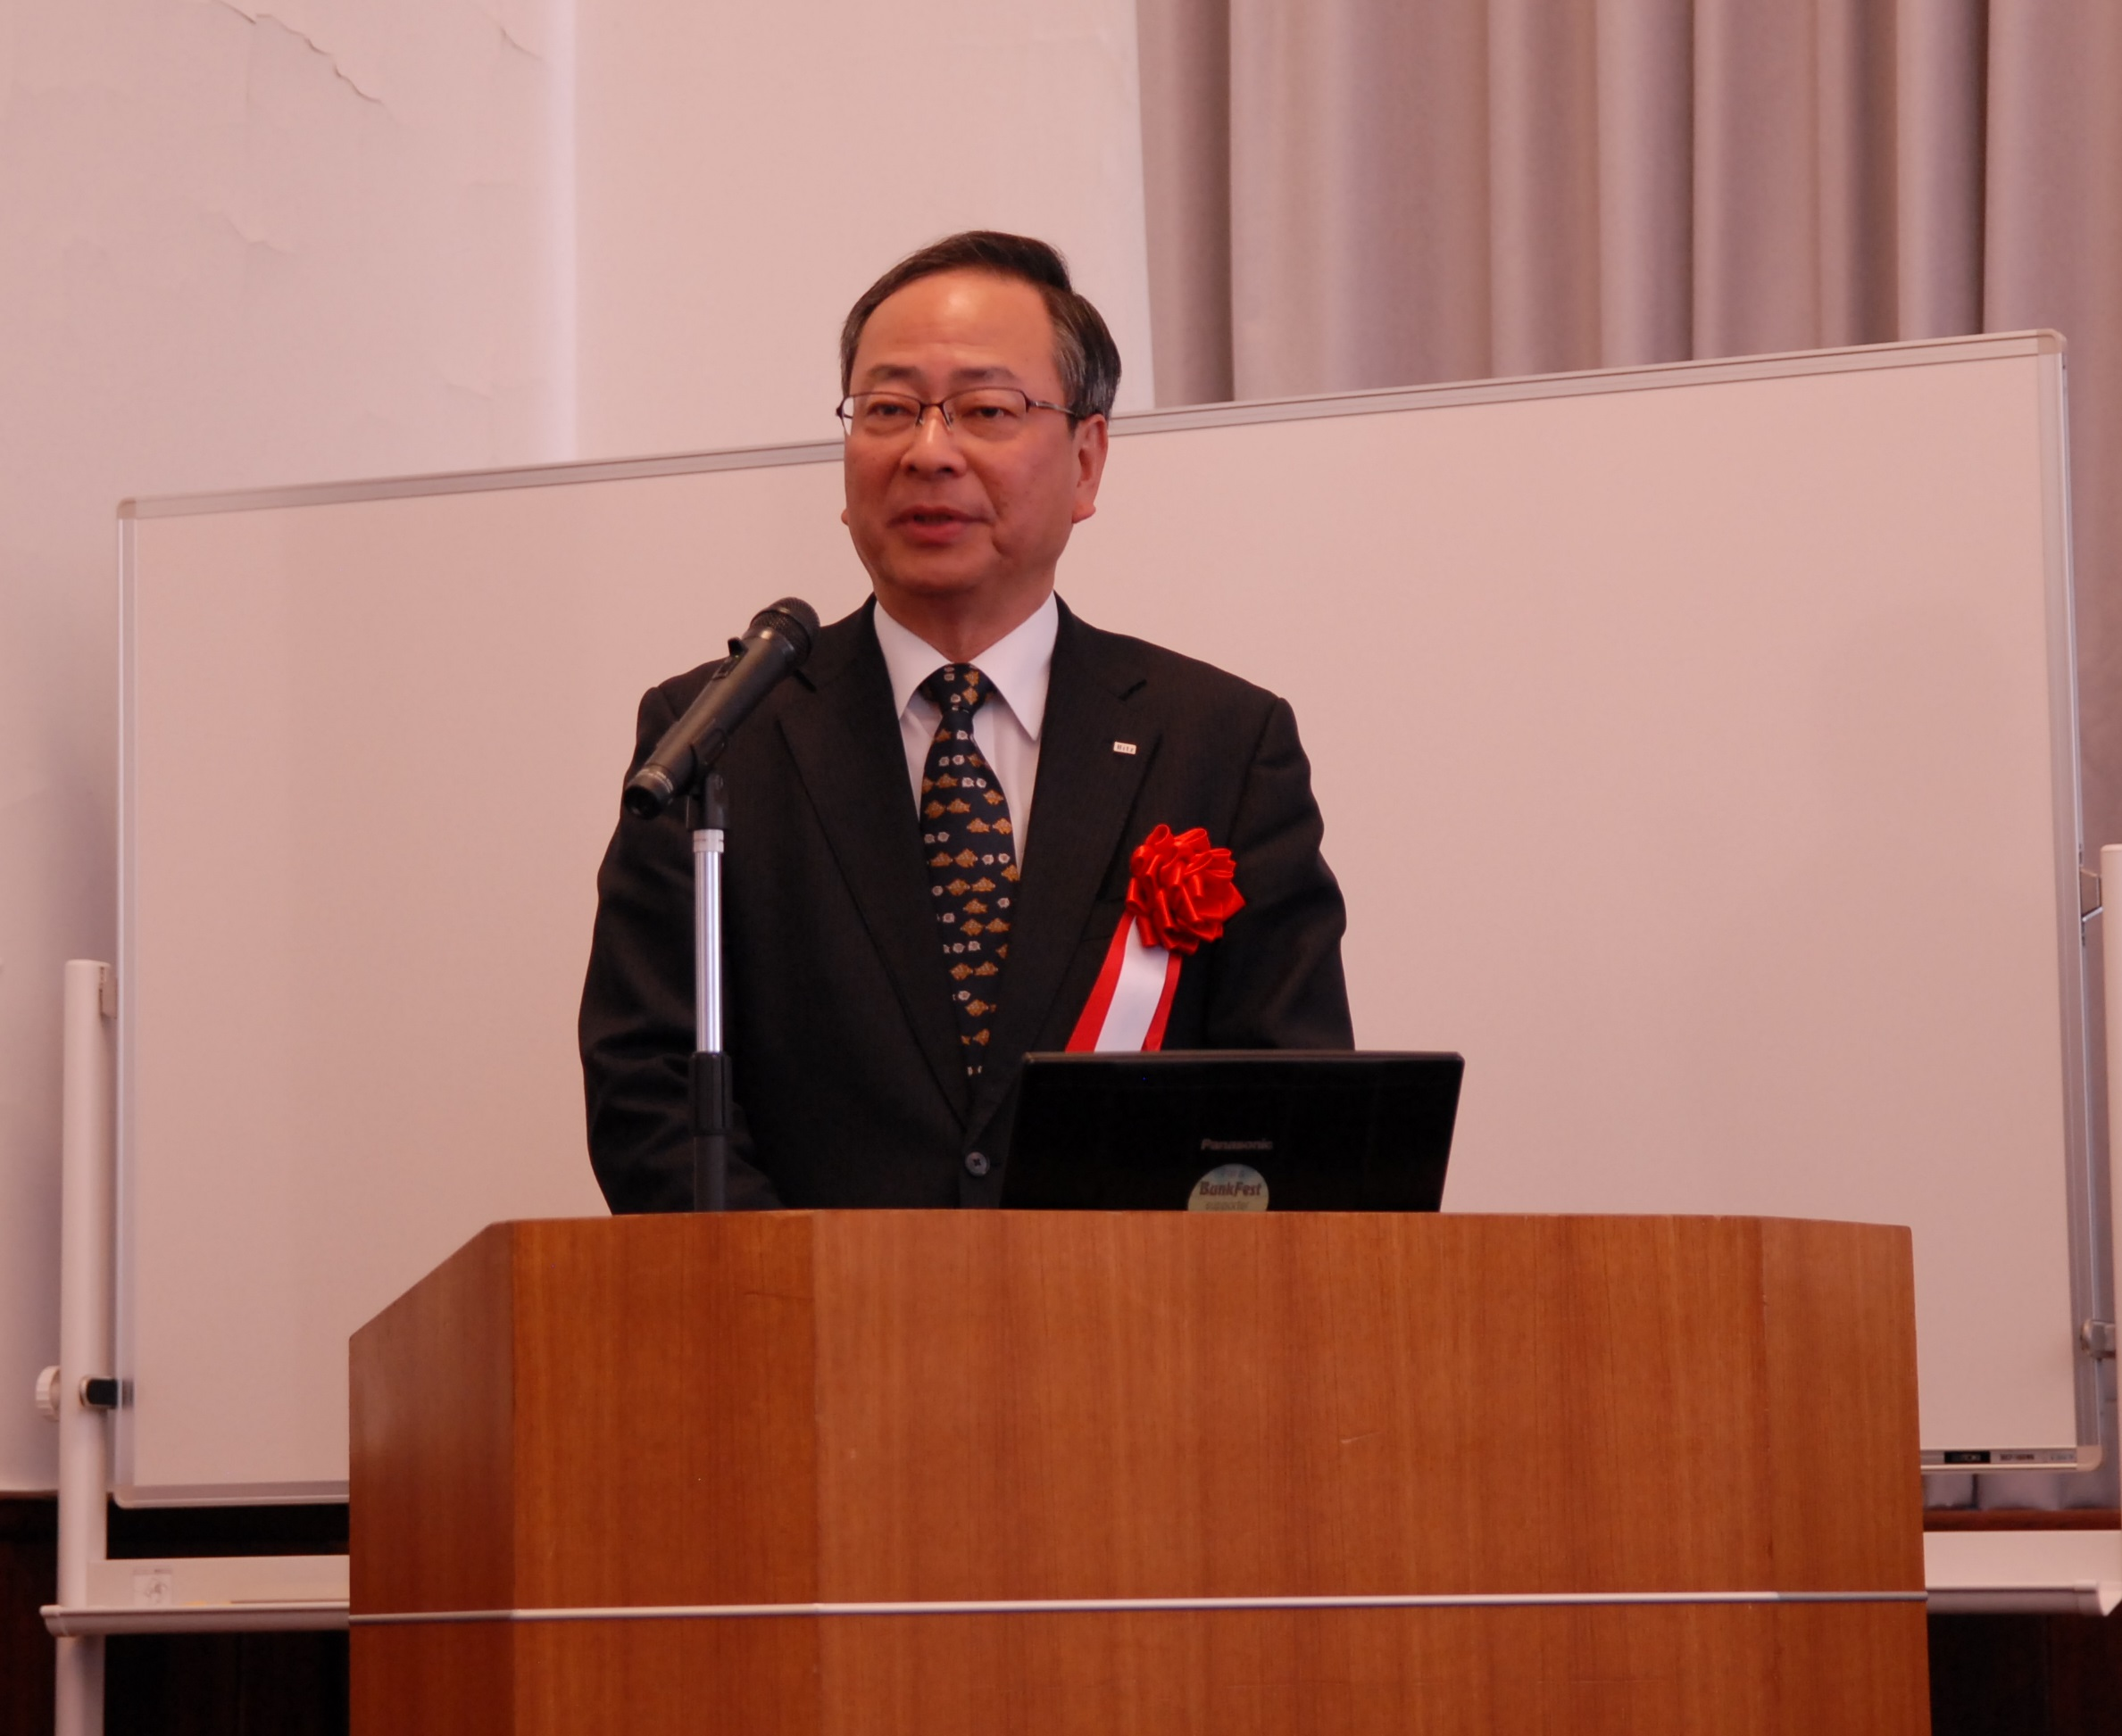 Mr. Sadao Mino, President of the Council for Cooperative Center